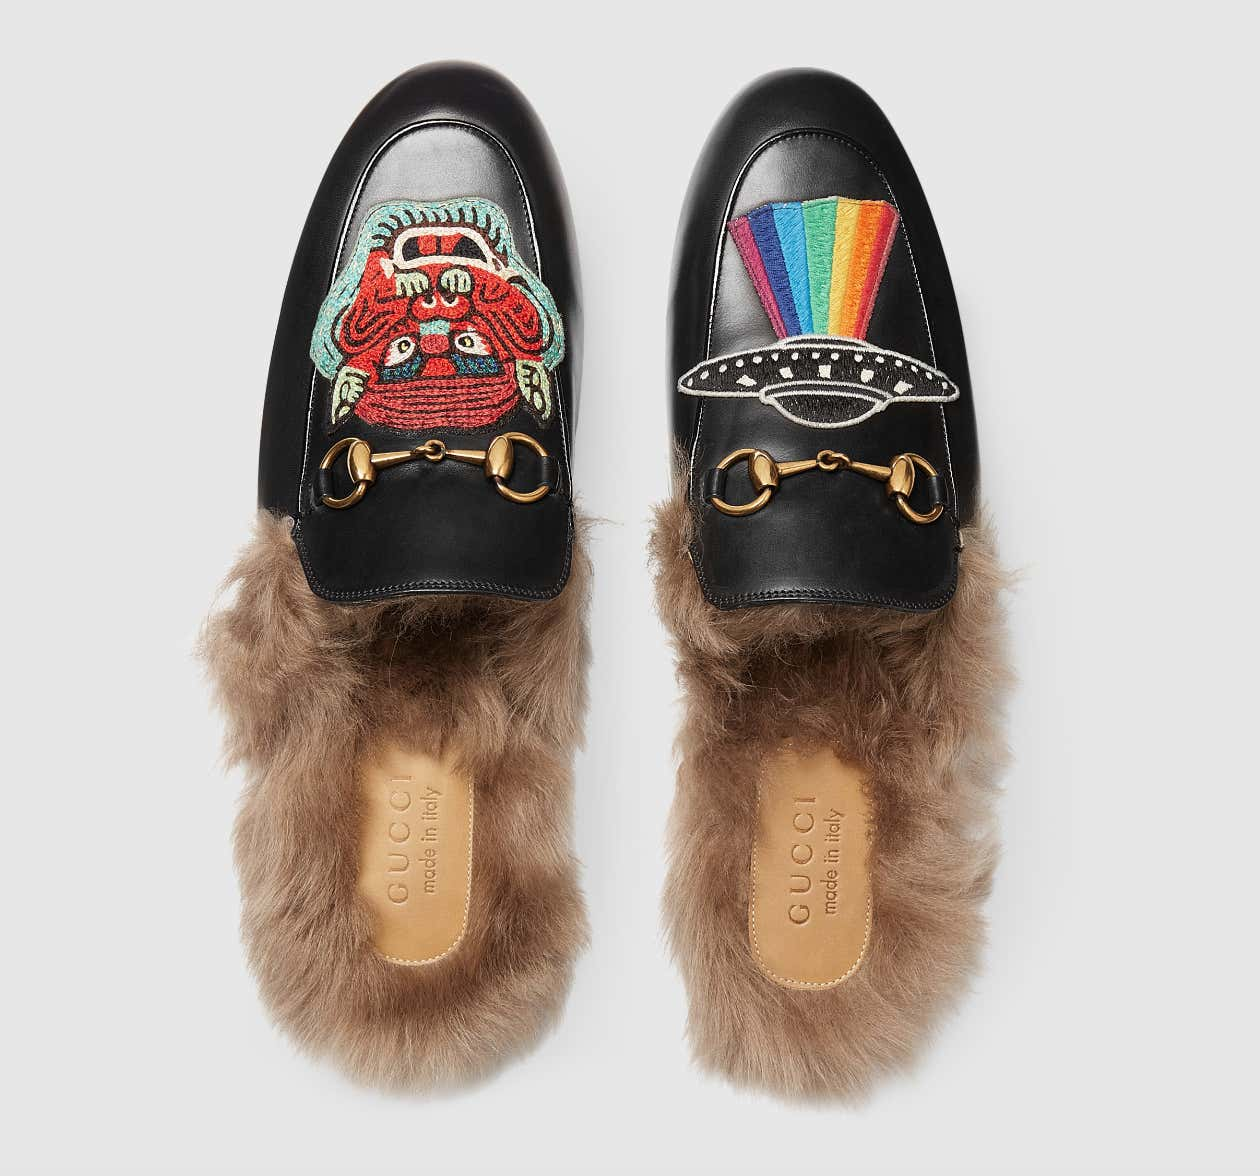 I Bought $1,100 Gucci Slippers In The Most Patriotic Way